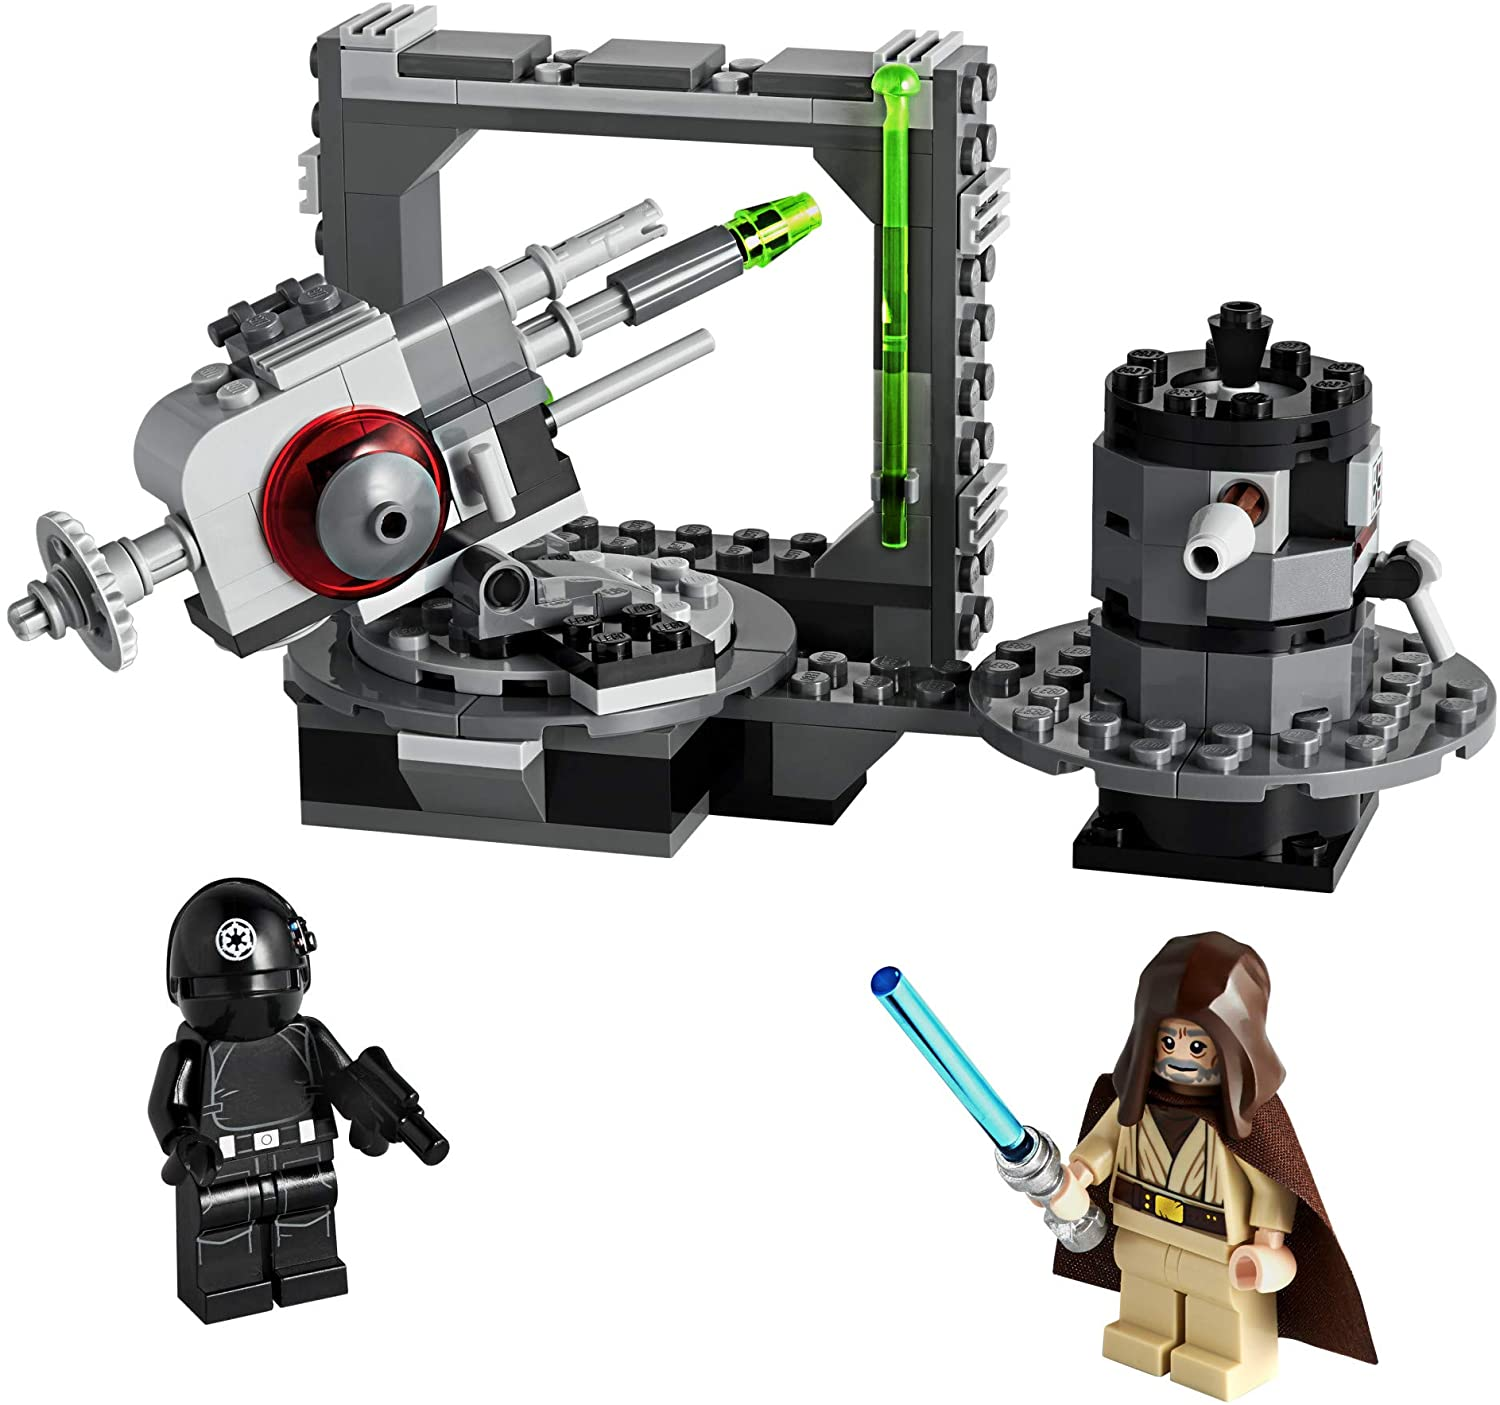 Amazon Com Lego Star Wars A New Hope Death Star Cannon 75246 Advanced Building Kit With Death Star Droid 159 Pieces Toys Games